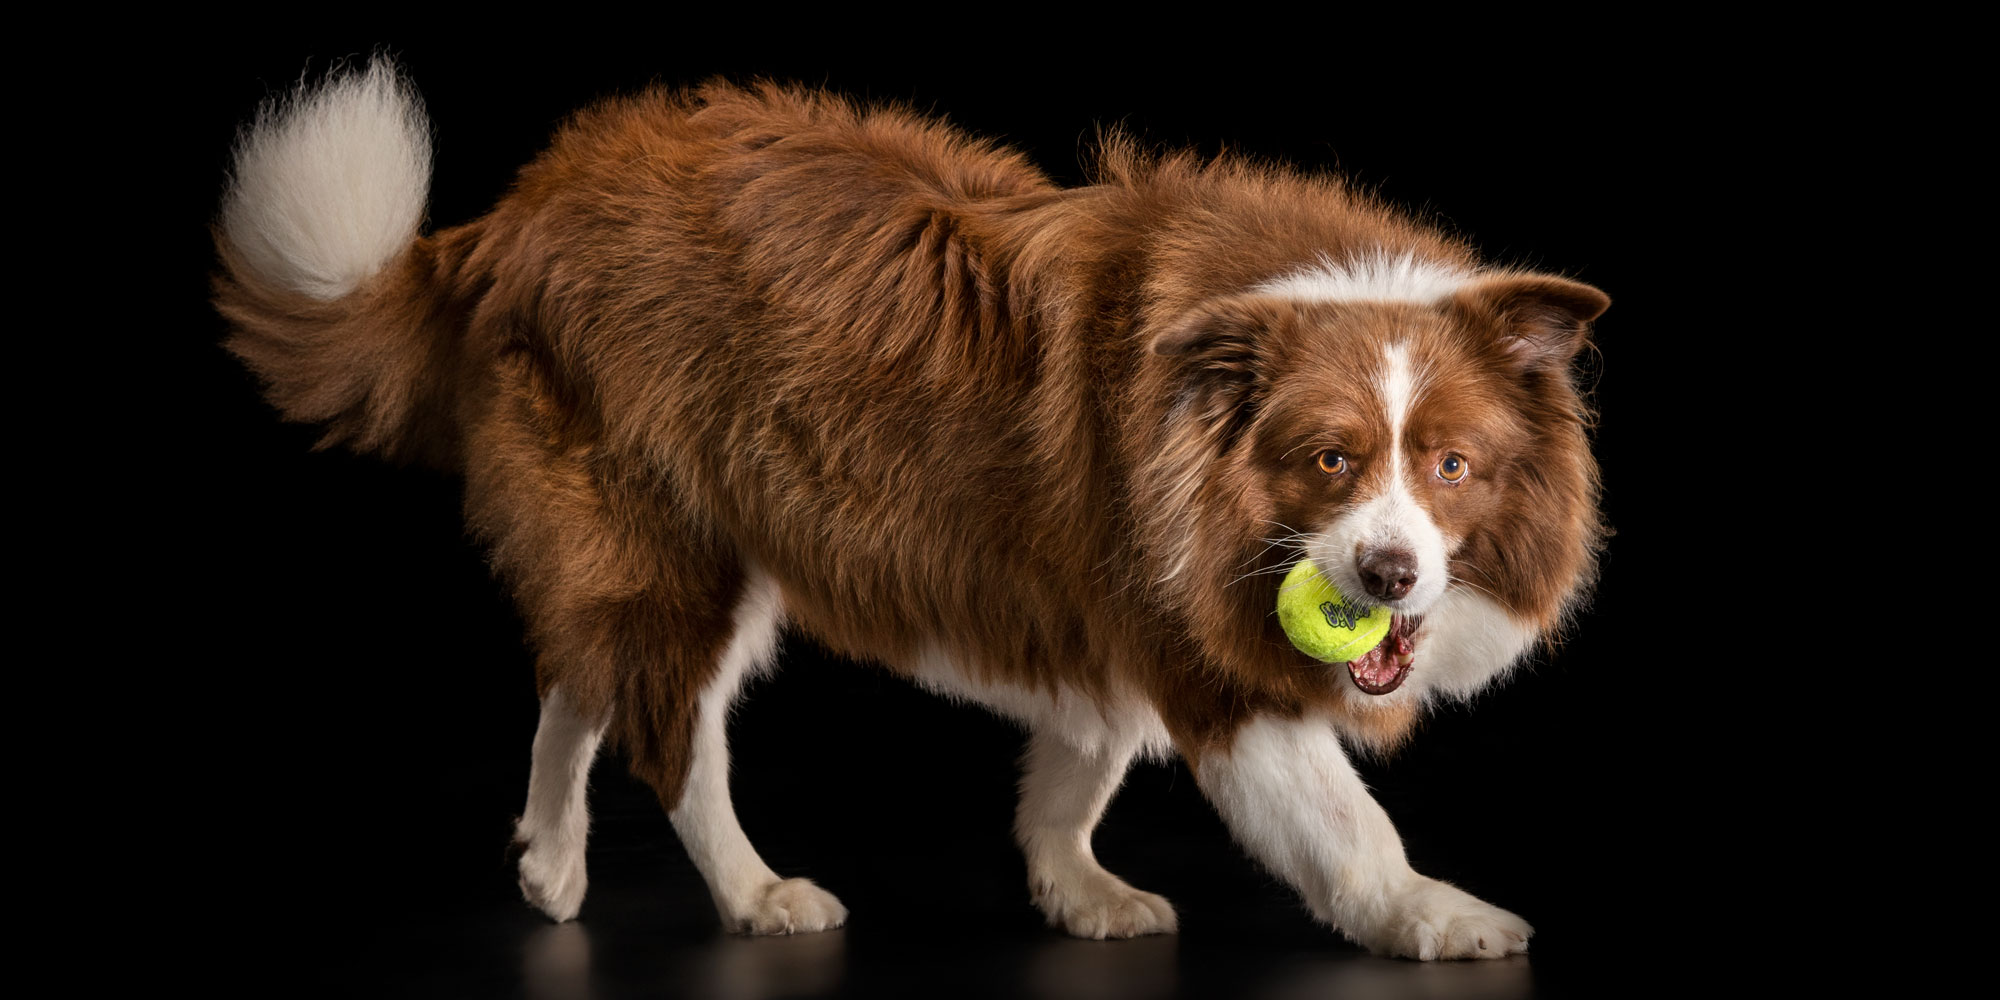 playful chocolate and white girl border collie with tennis ball in mouth